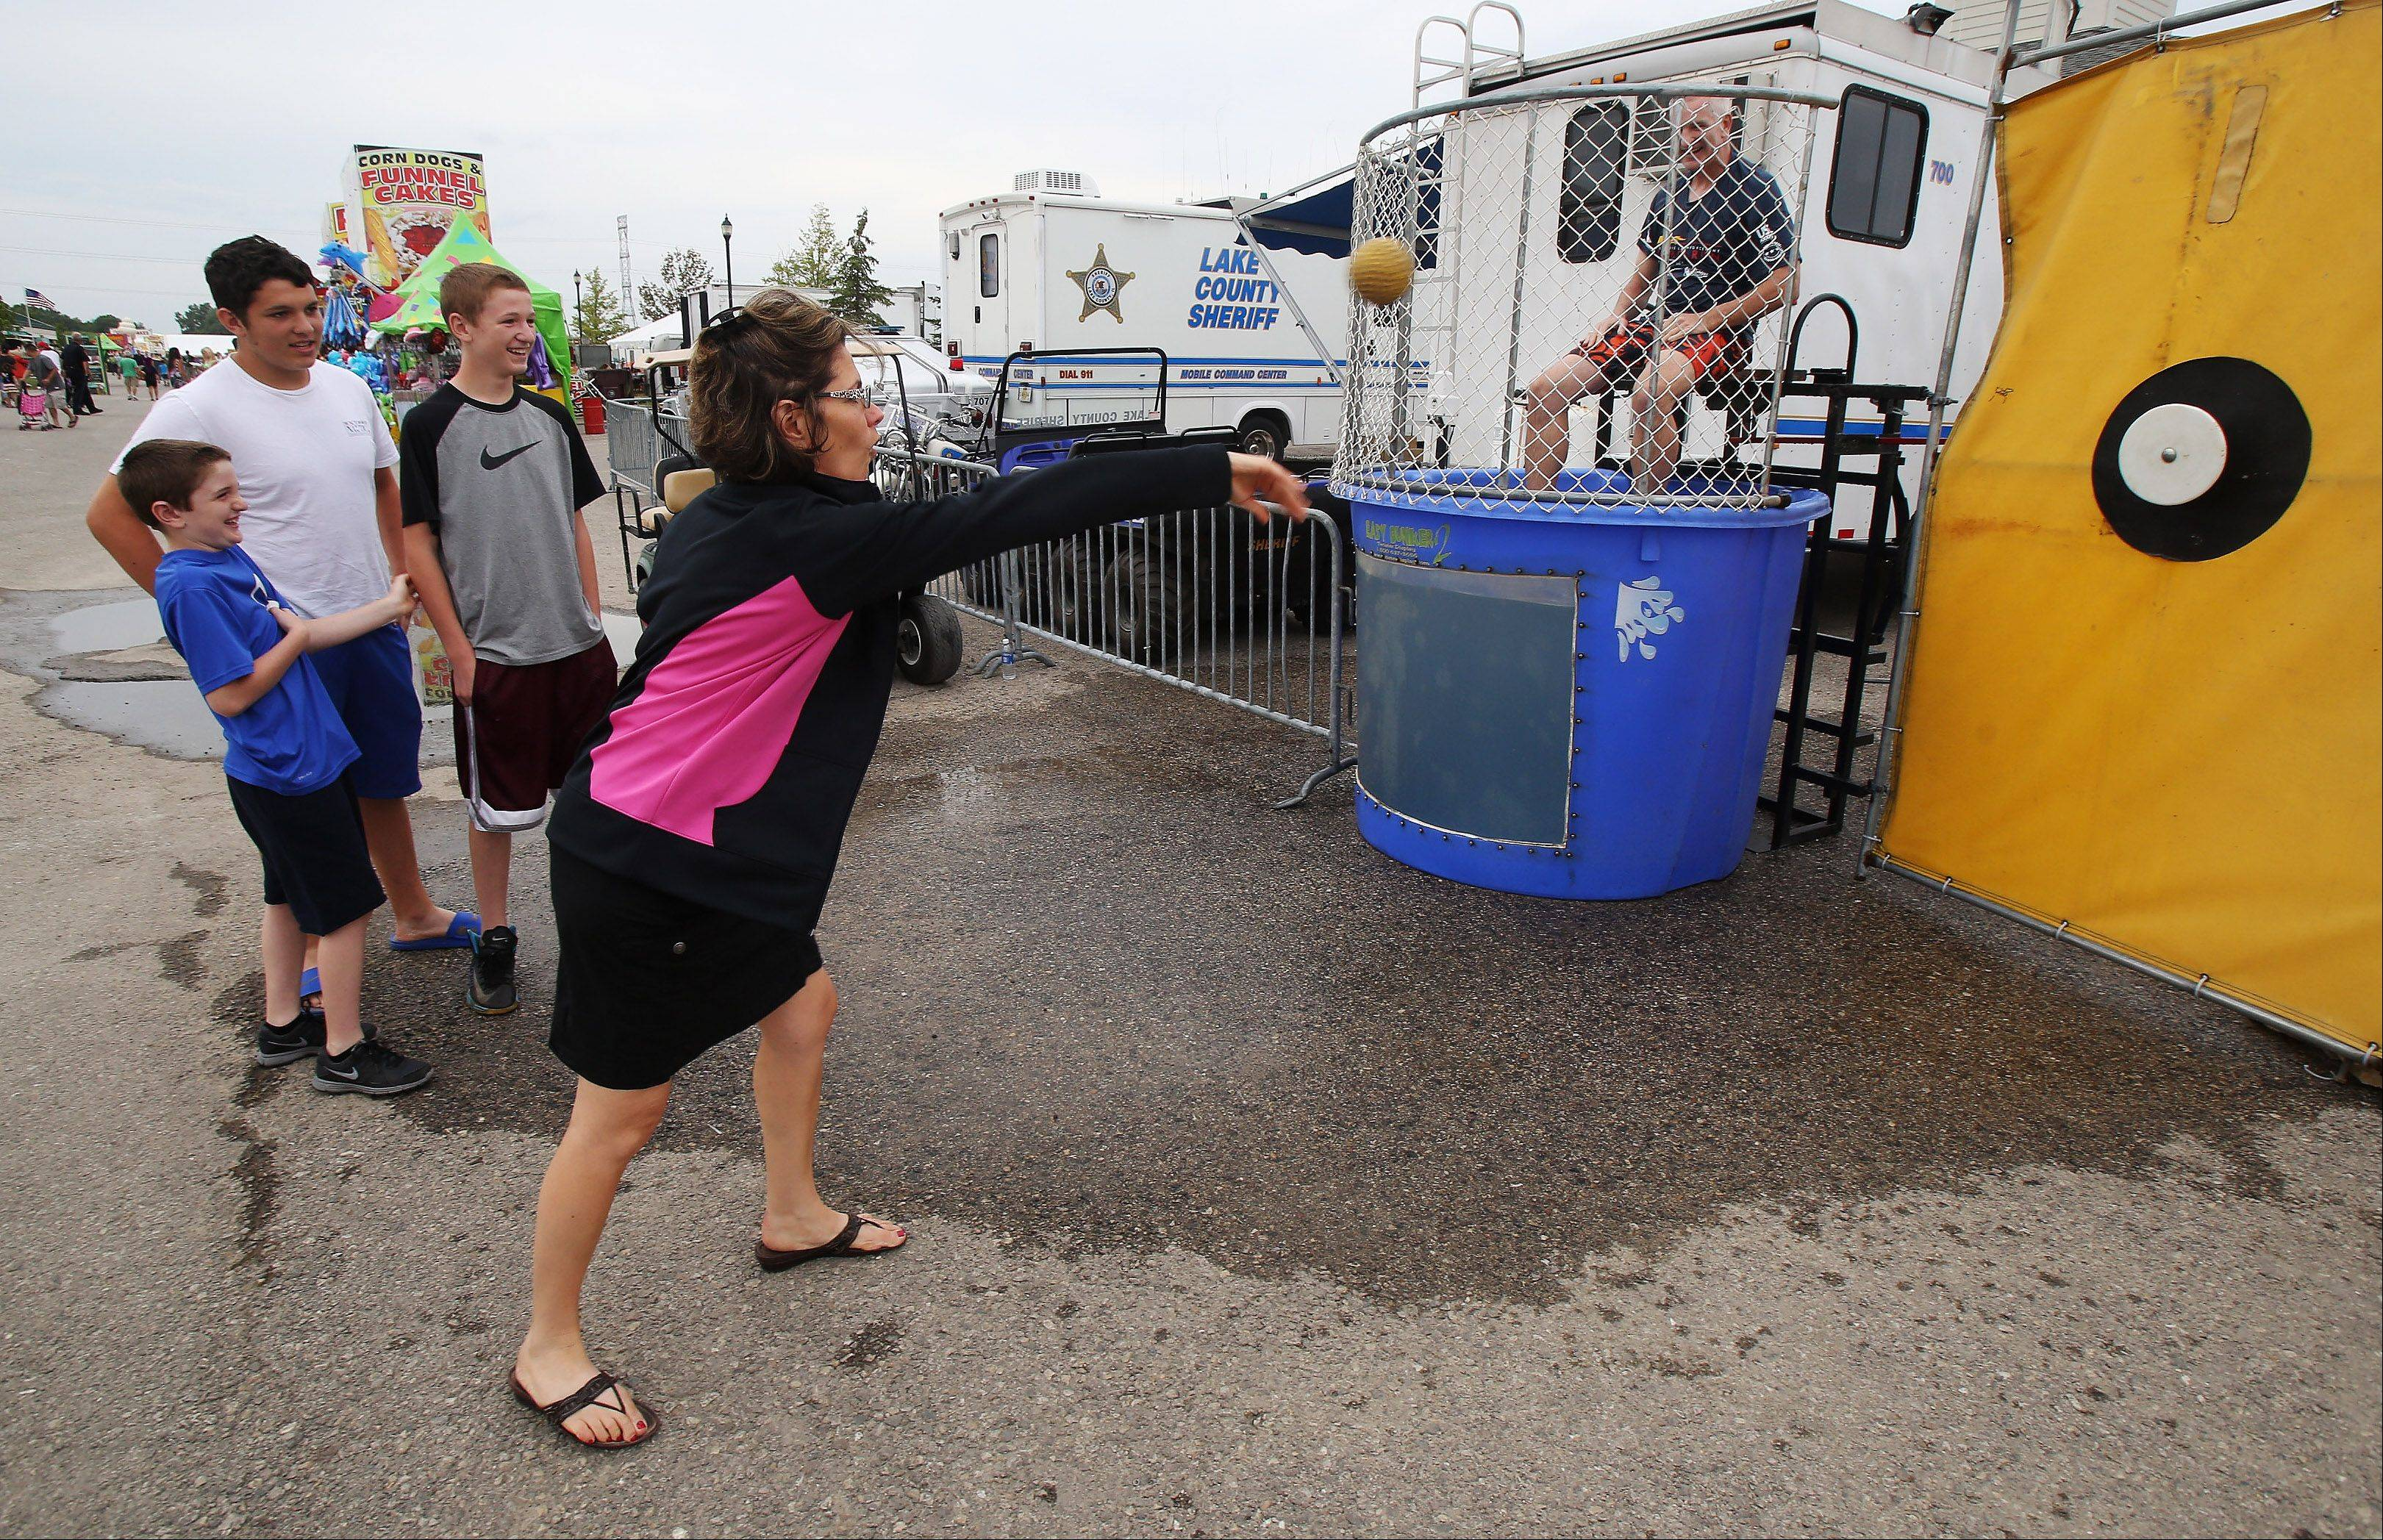 Irene Curran of Libertyville throws the ball to try and dunk her husband Lake County Sheriff Mark Curran in the dunk tank sponsored by the Lake County Sheriff's Department Thursday at the Lake County Fairgrounds in Grayslake. The money raised will be donated to Special Olympics Illinois.